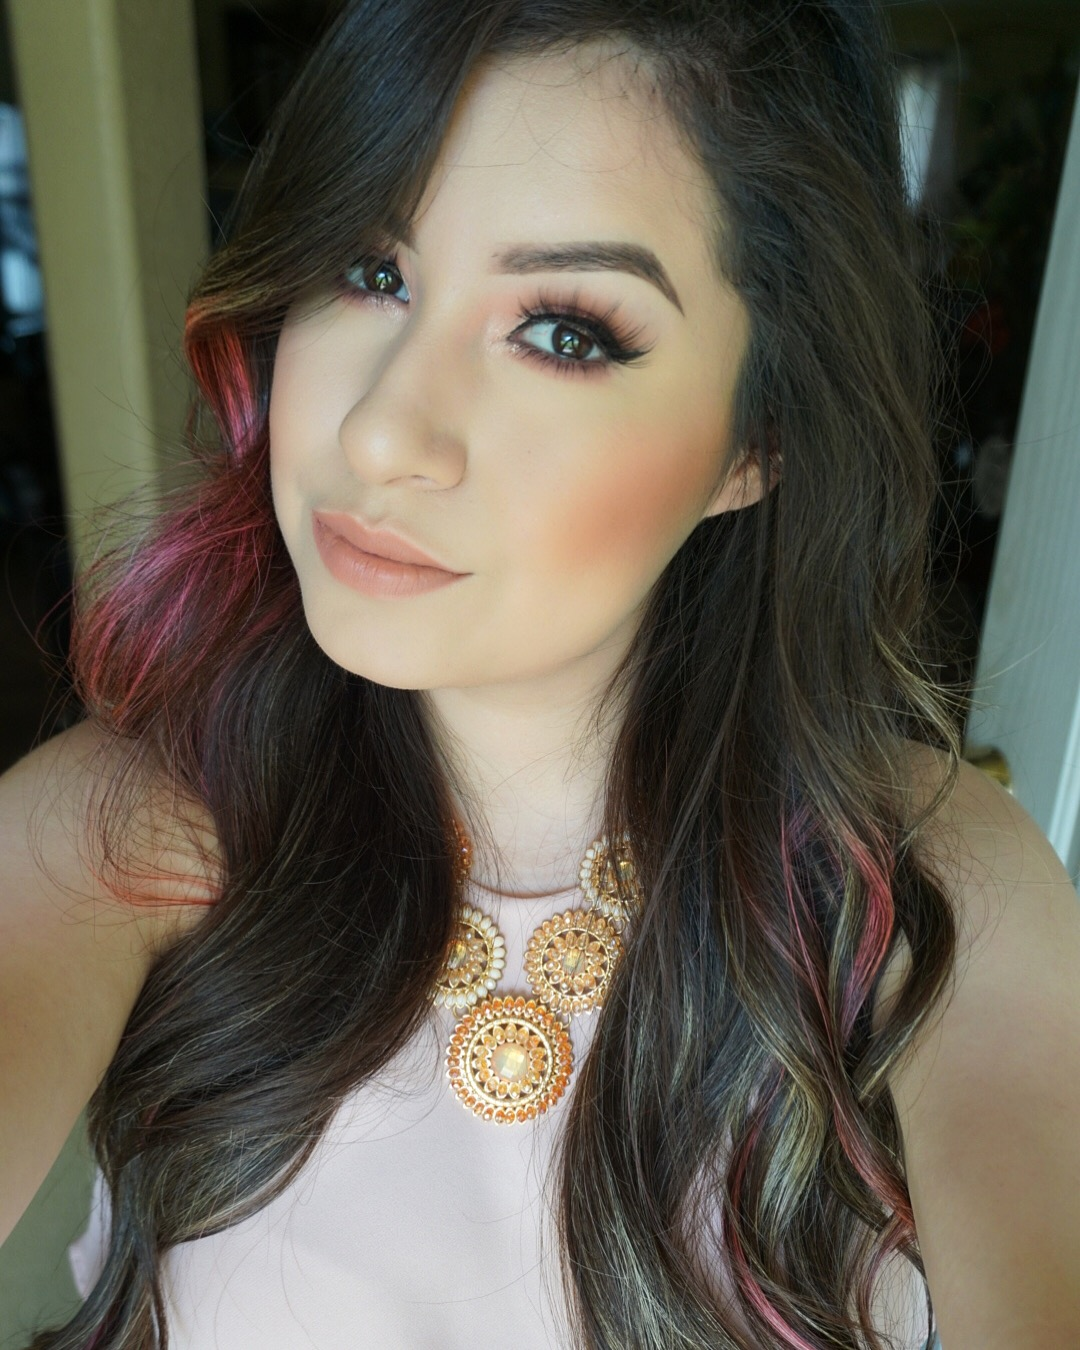 Alondra began her career as a makeup artist in 2014. She wished to expand her cosmetic service offerings to her clients and underwent training and certification for Microblading in 2017. Her style aligns with out natural beauty driven concepts model and focus on detail work is superior. She understands how scary it is to trust another person in this industry and will make sure you feel completely comfortable in her chair.